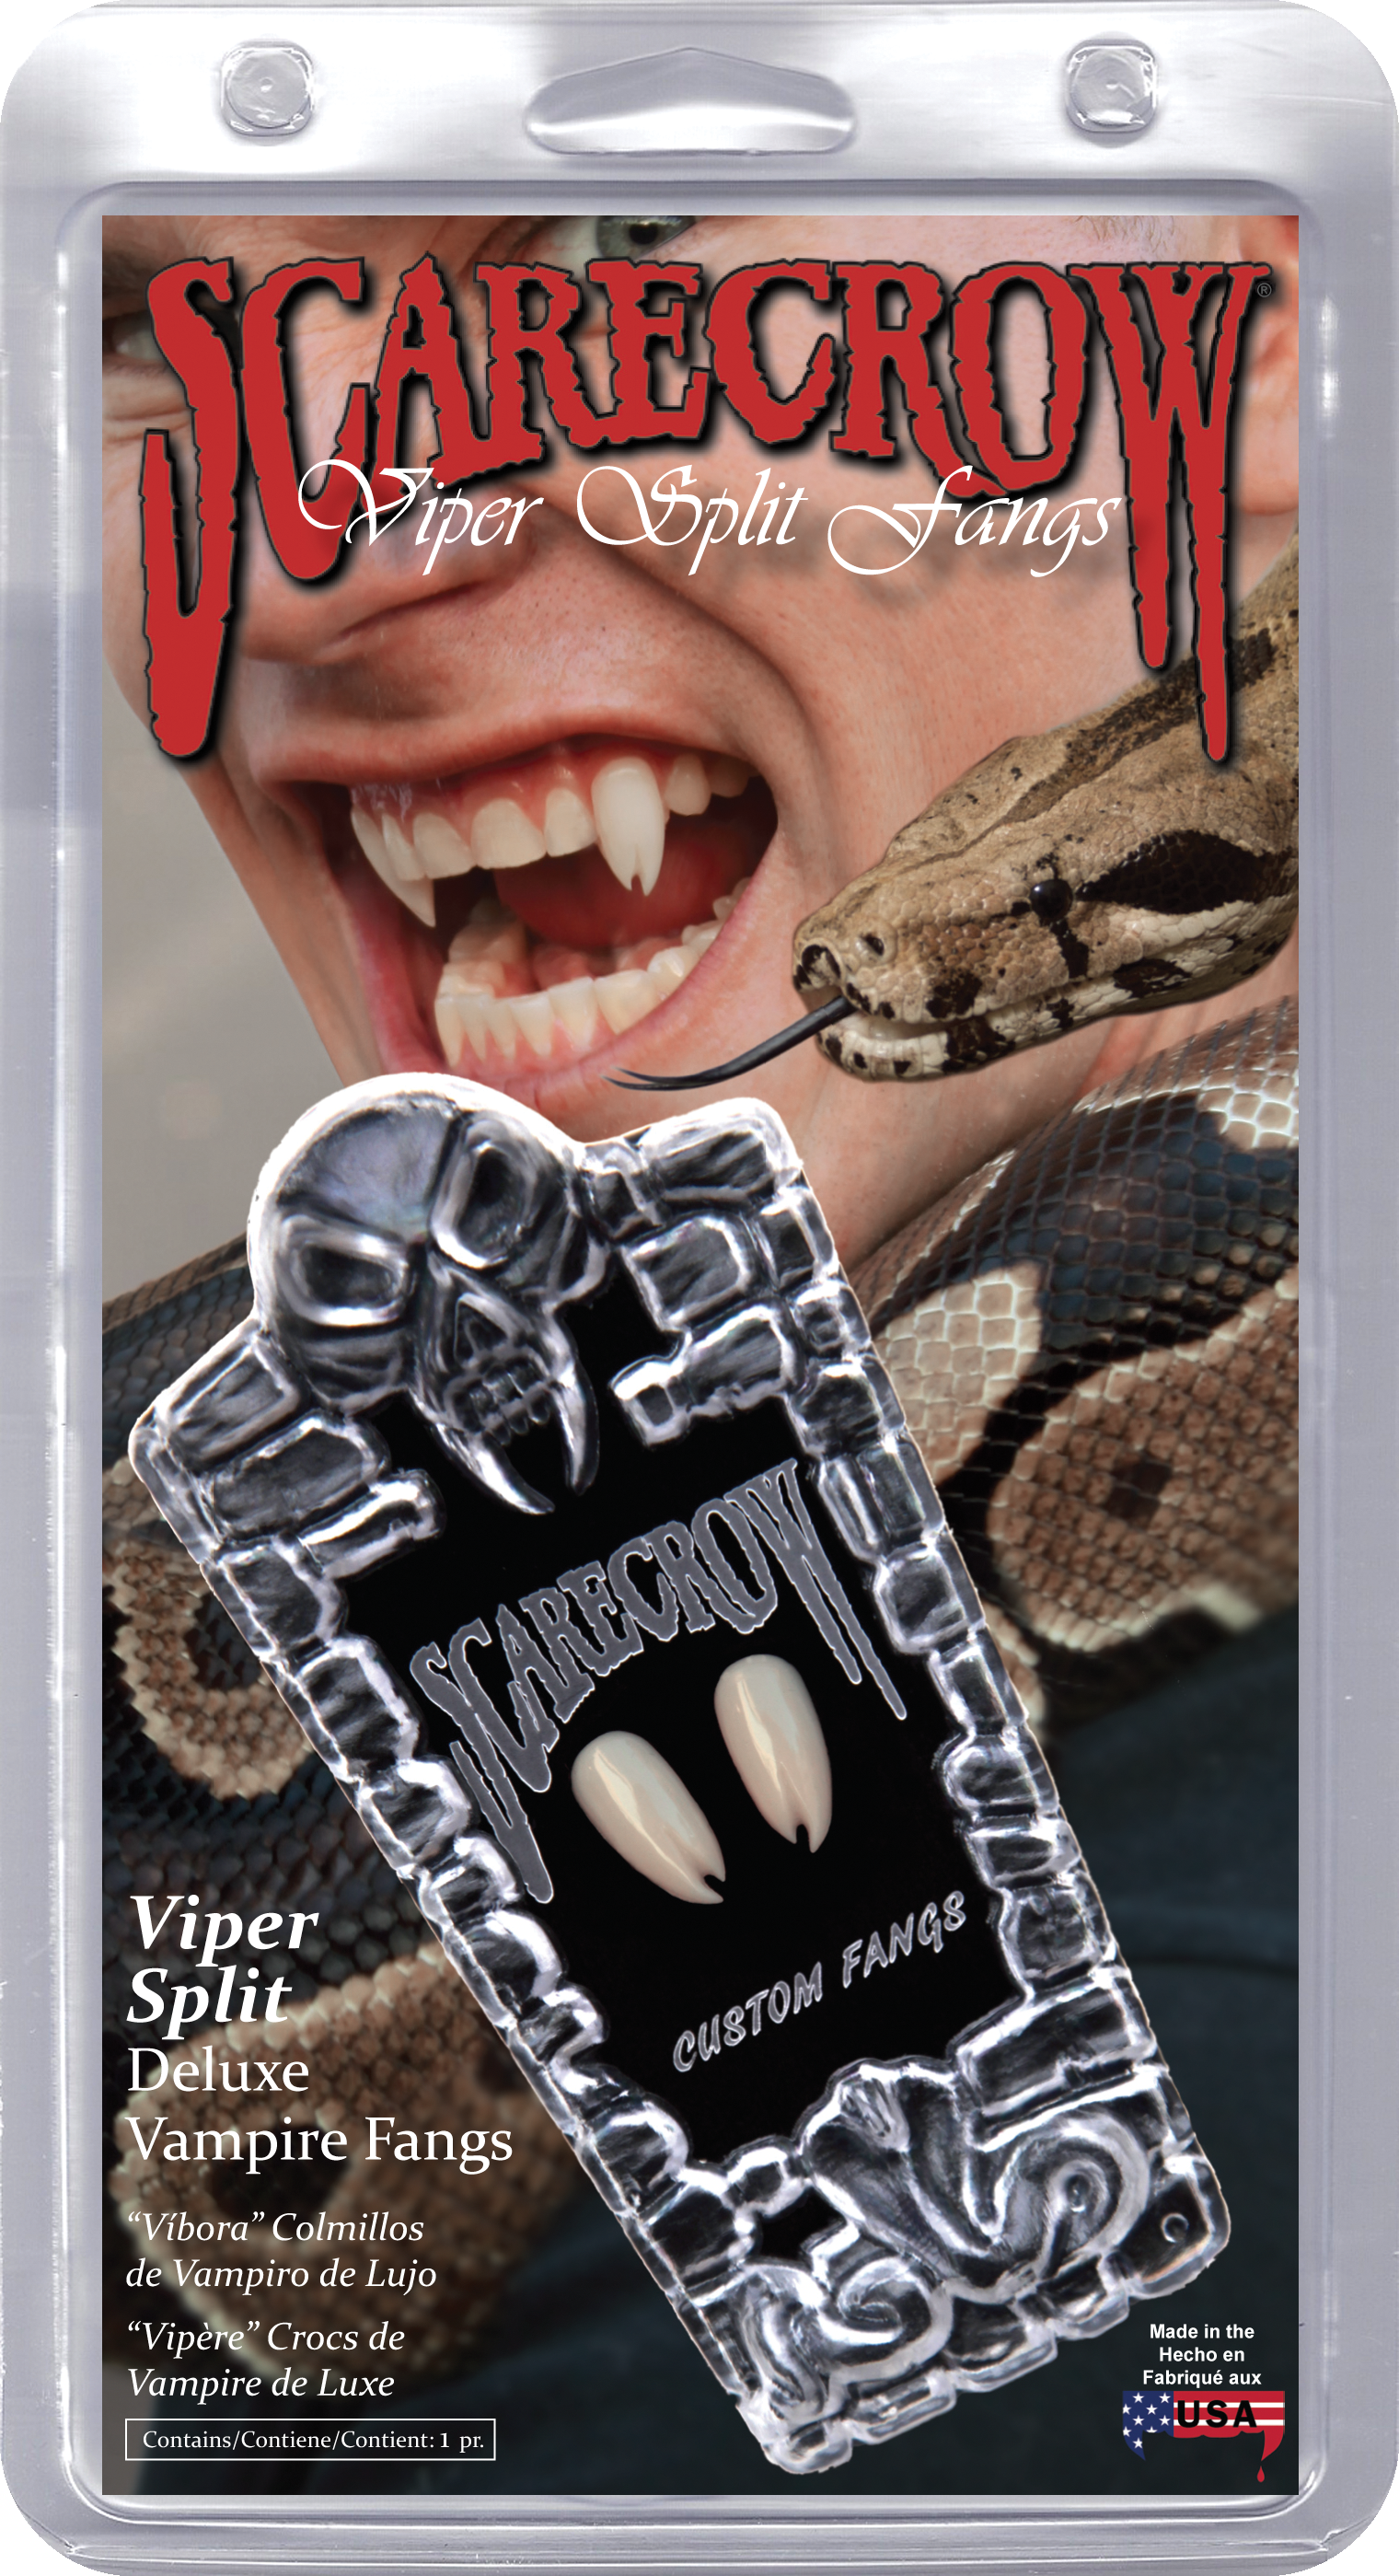 Copy of Viper Split Deluxe Custom Fangs (VF600)